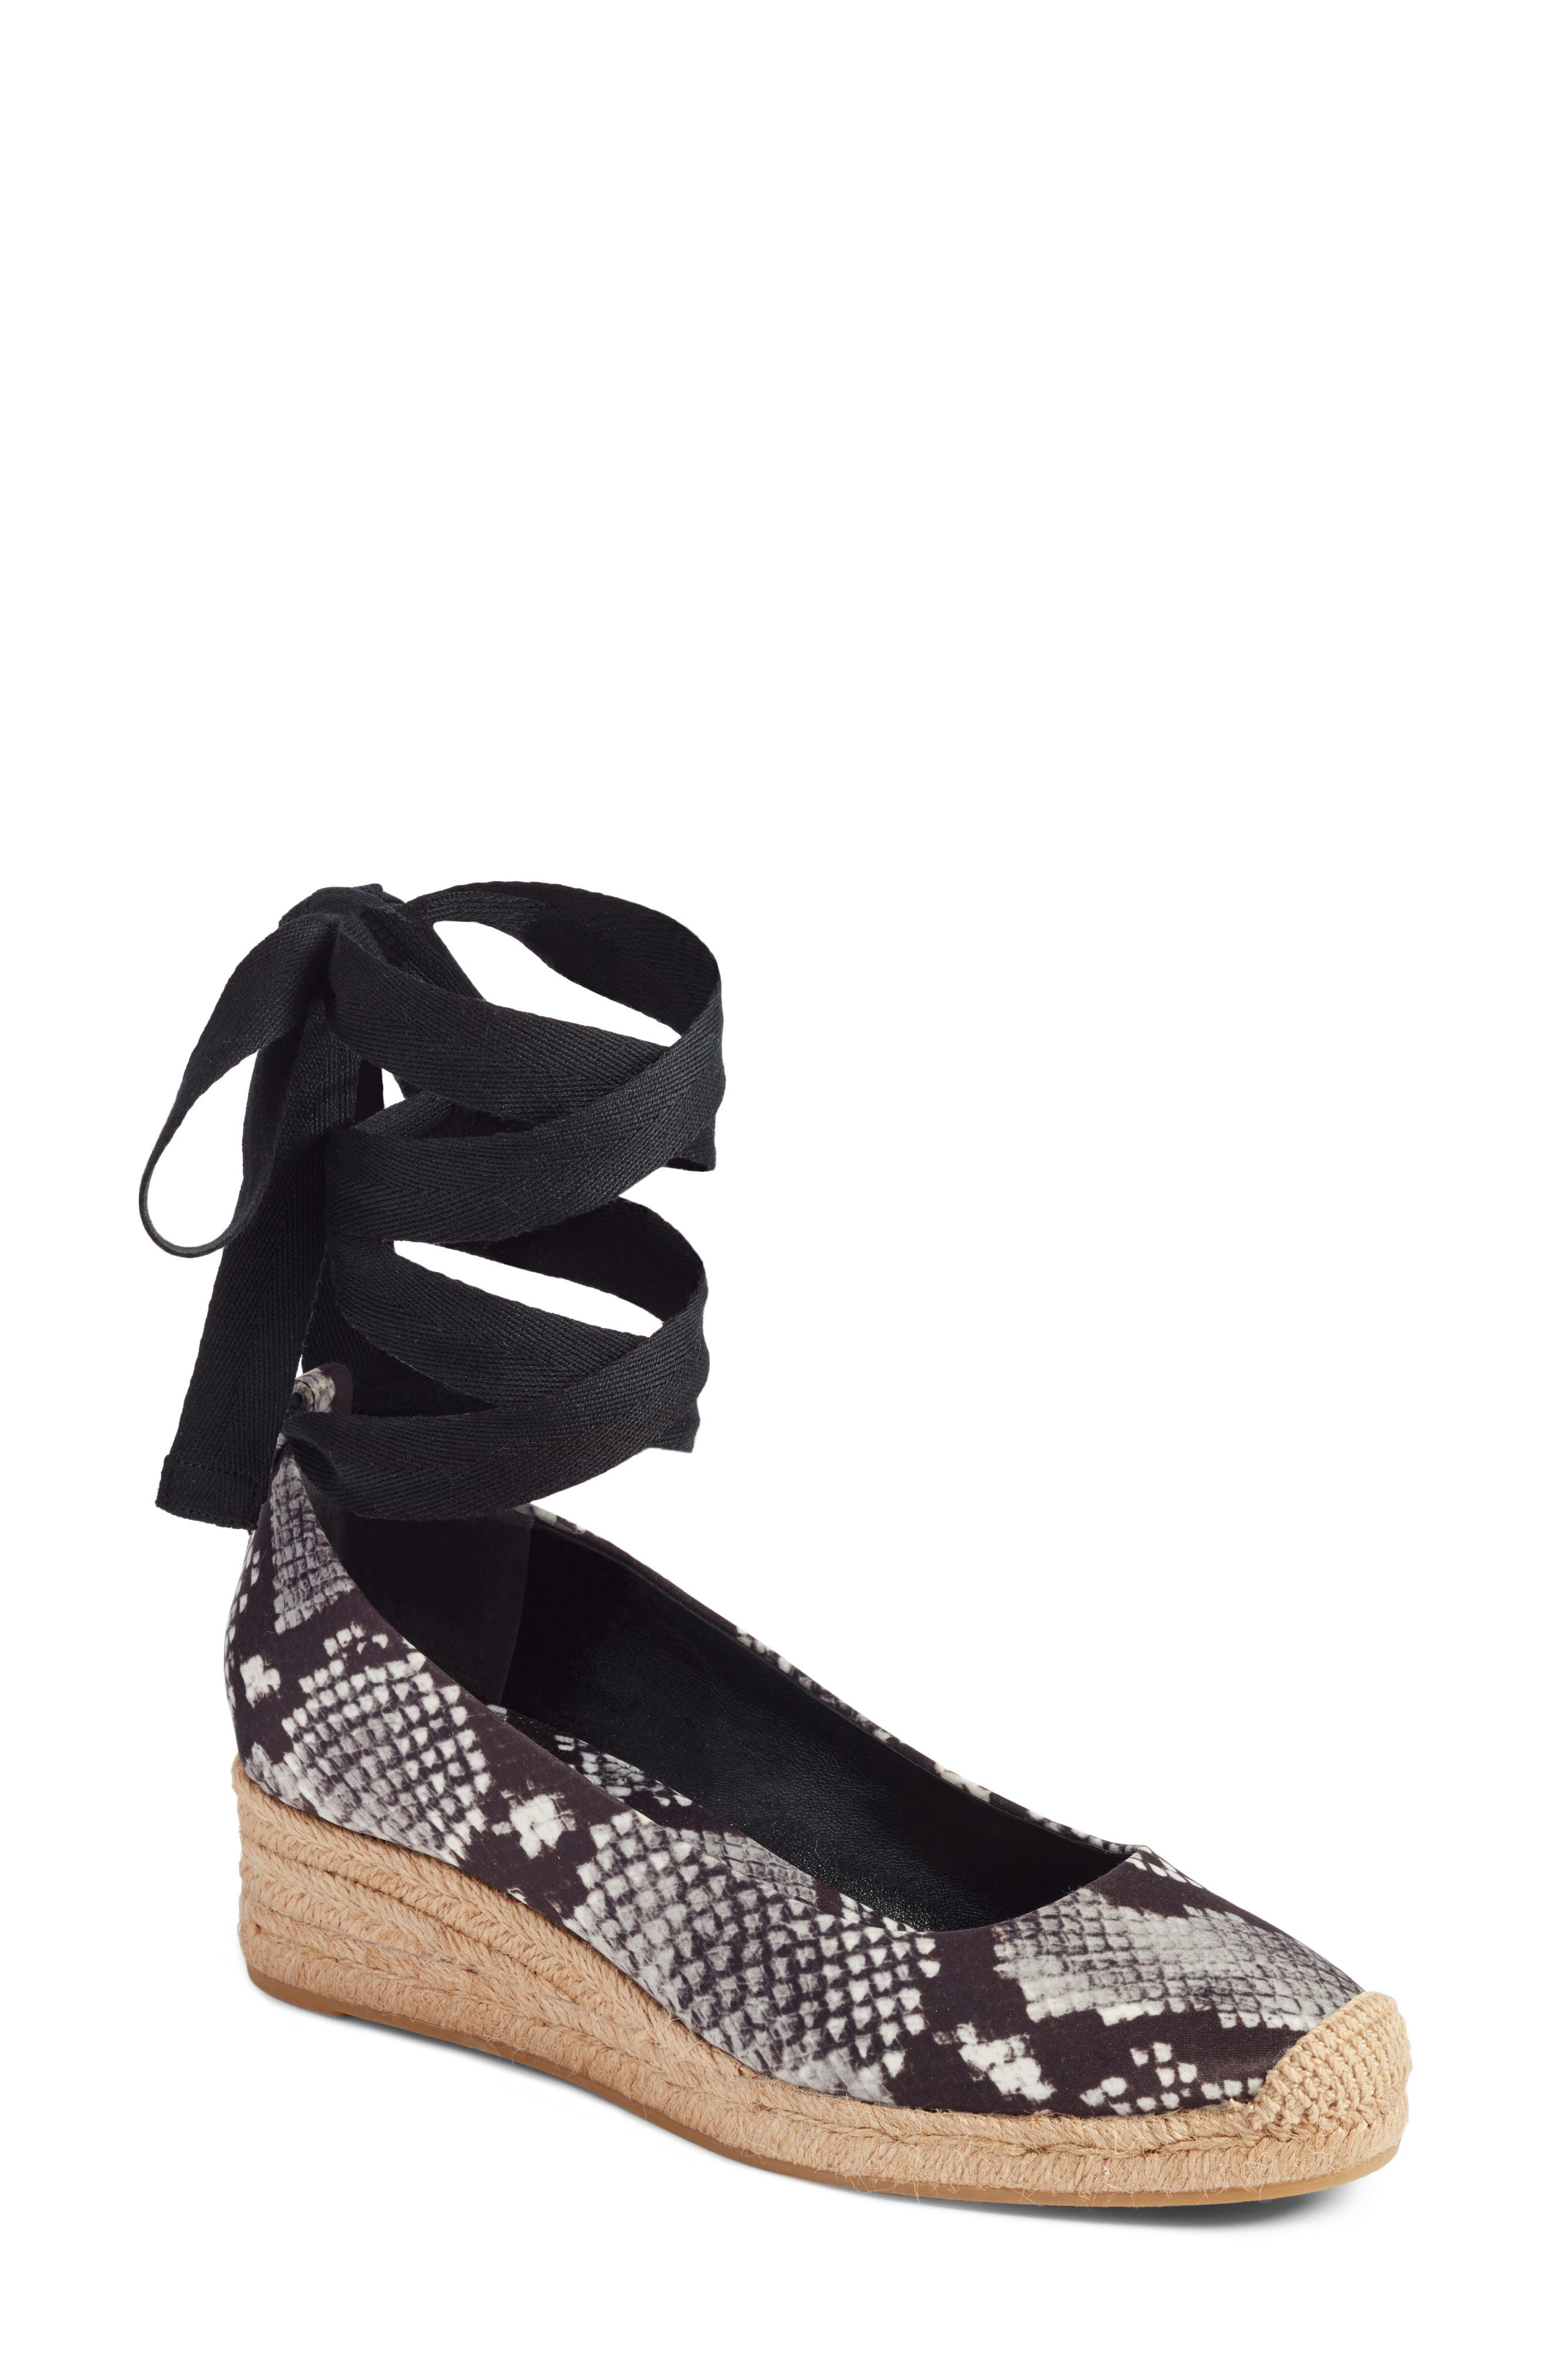 Main Image - Tory Burch Heather Ankle Wrap Espadrille Wedge (Women)